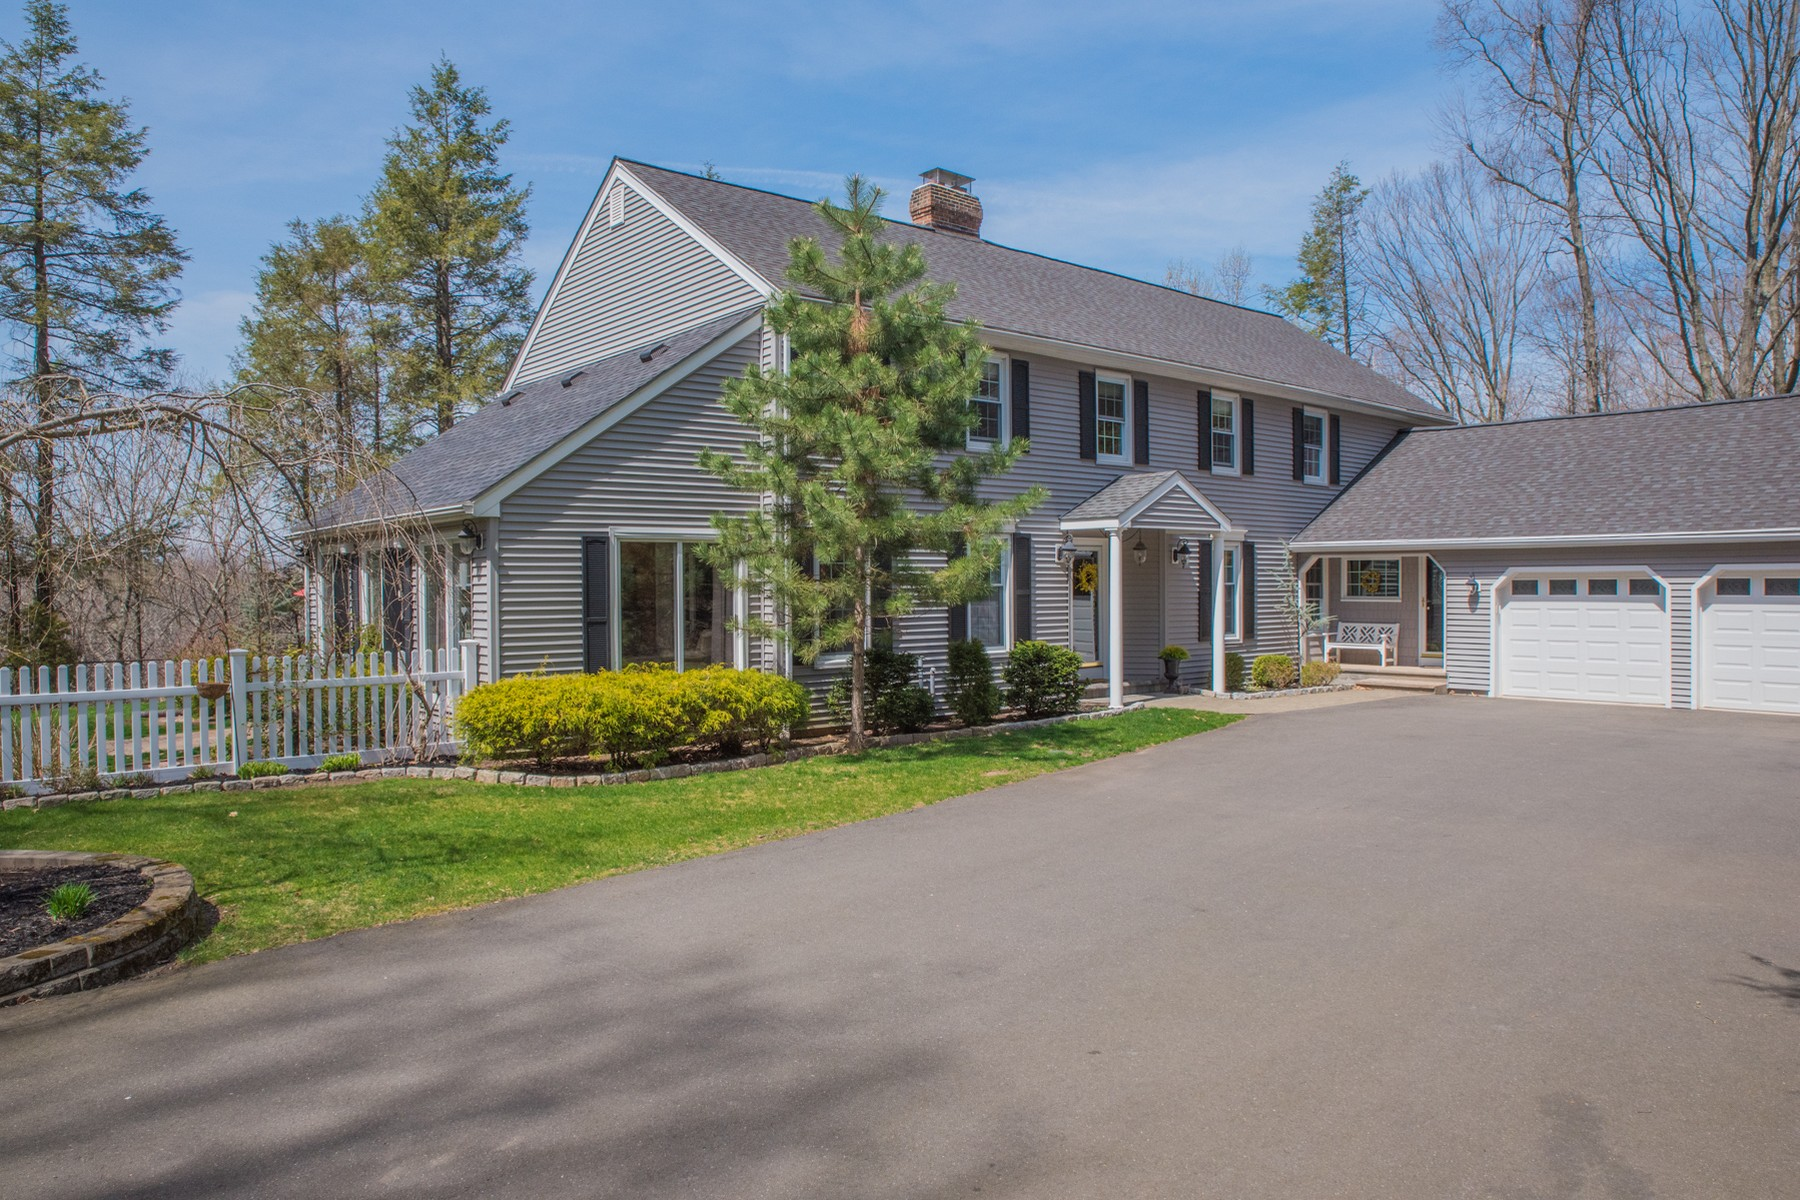 Villa per Vendita alle ore Stunning Colonial Affords Privacy 1199 Woodruff St Southington, Connecticut, 06489 Stati Uniti